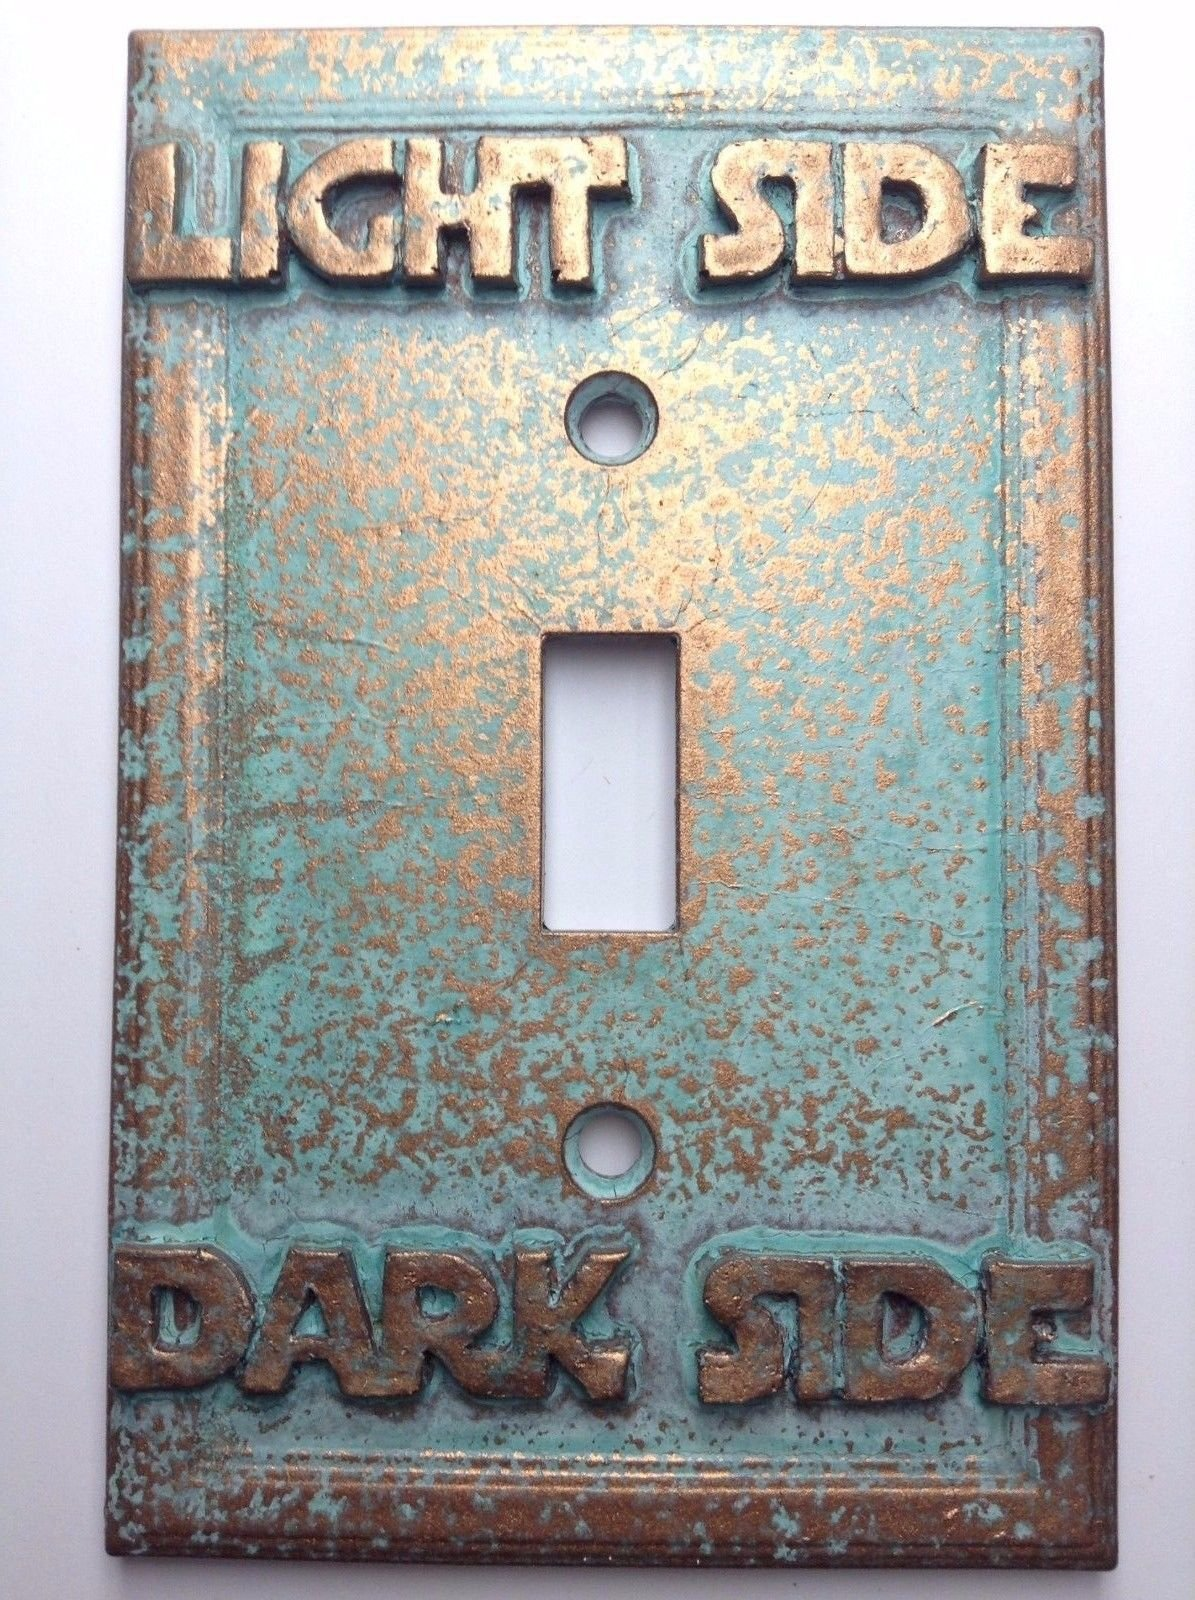 Star Wars (Light/Dark Side) Light Switch Cover (Custom) (Aged Patina)